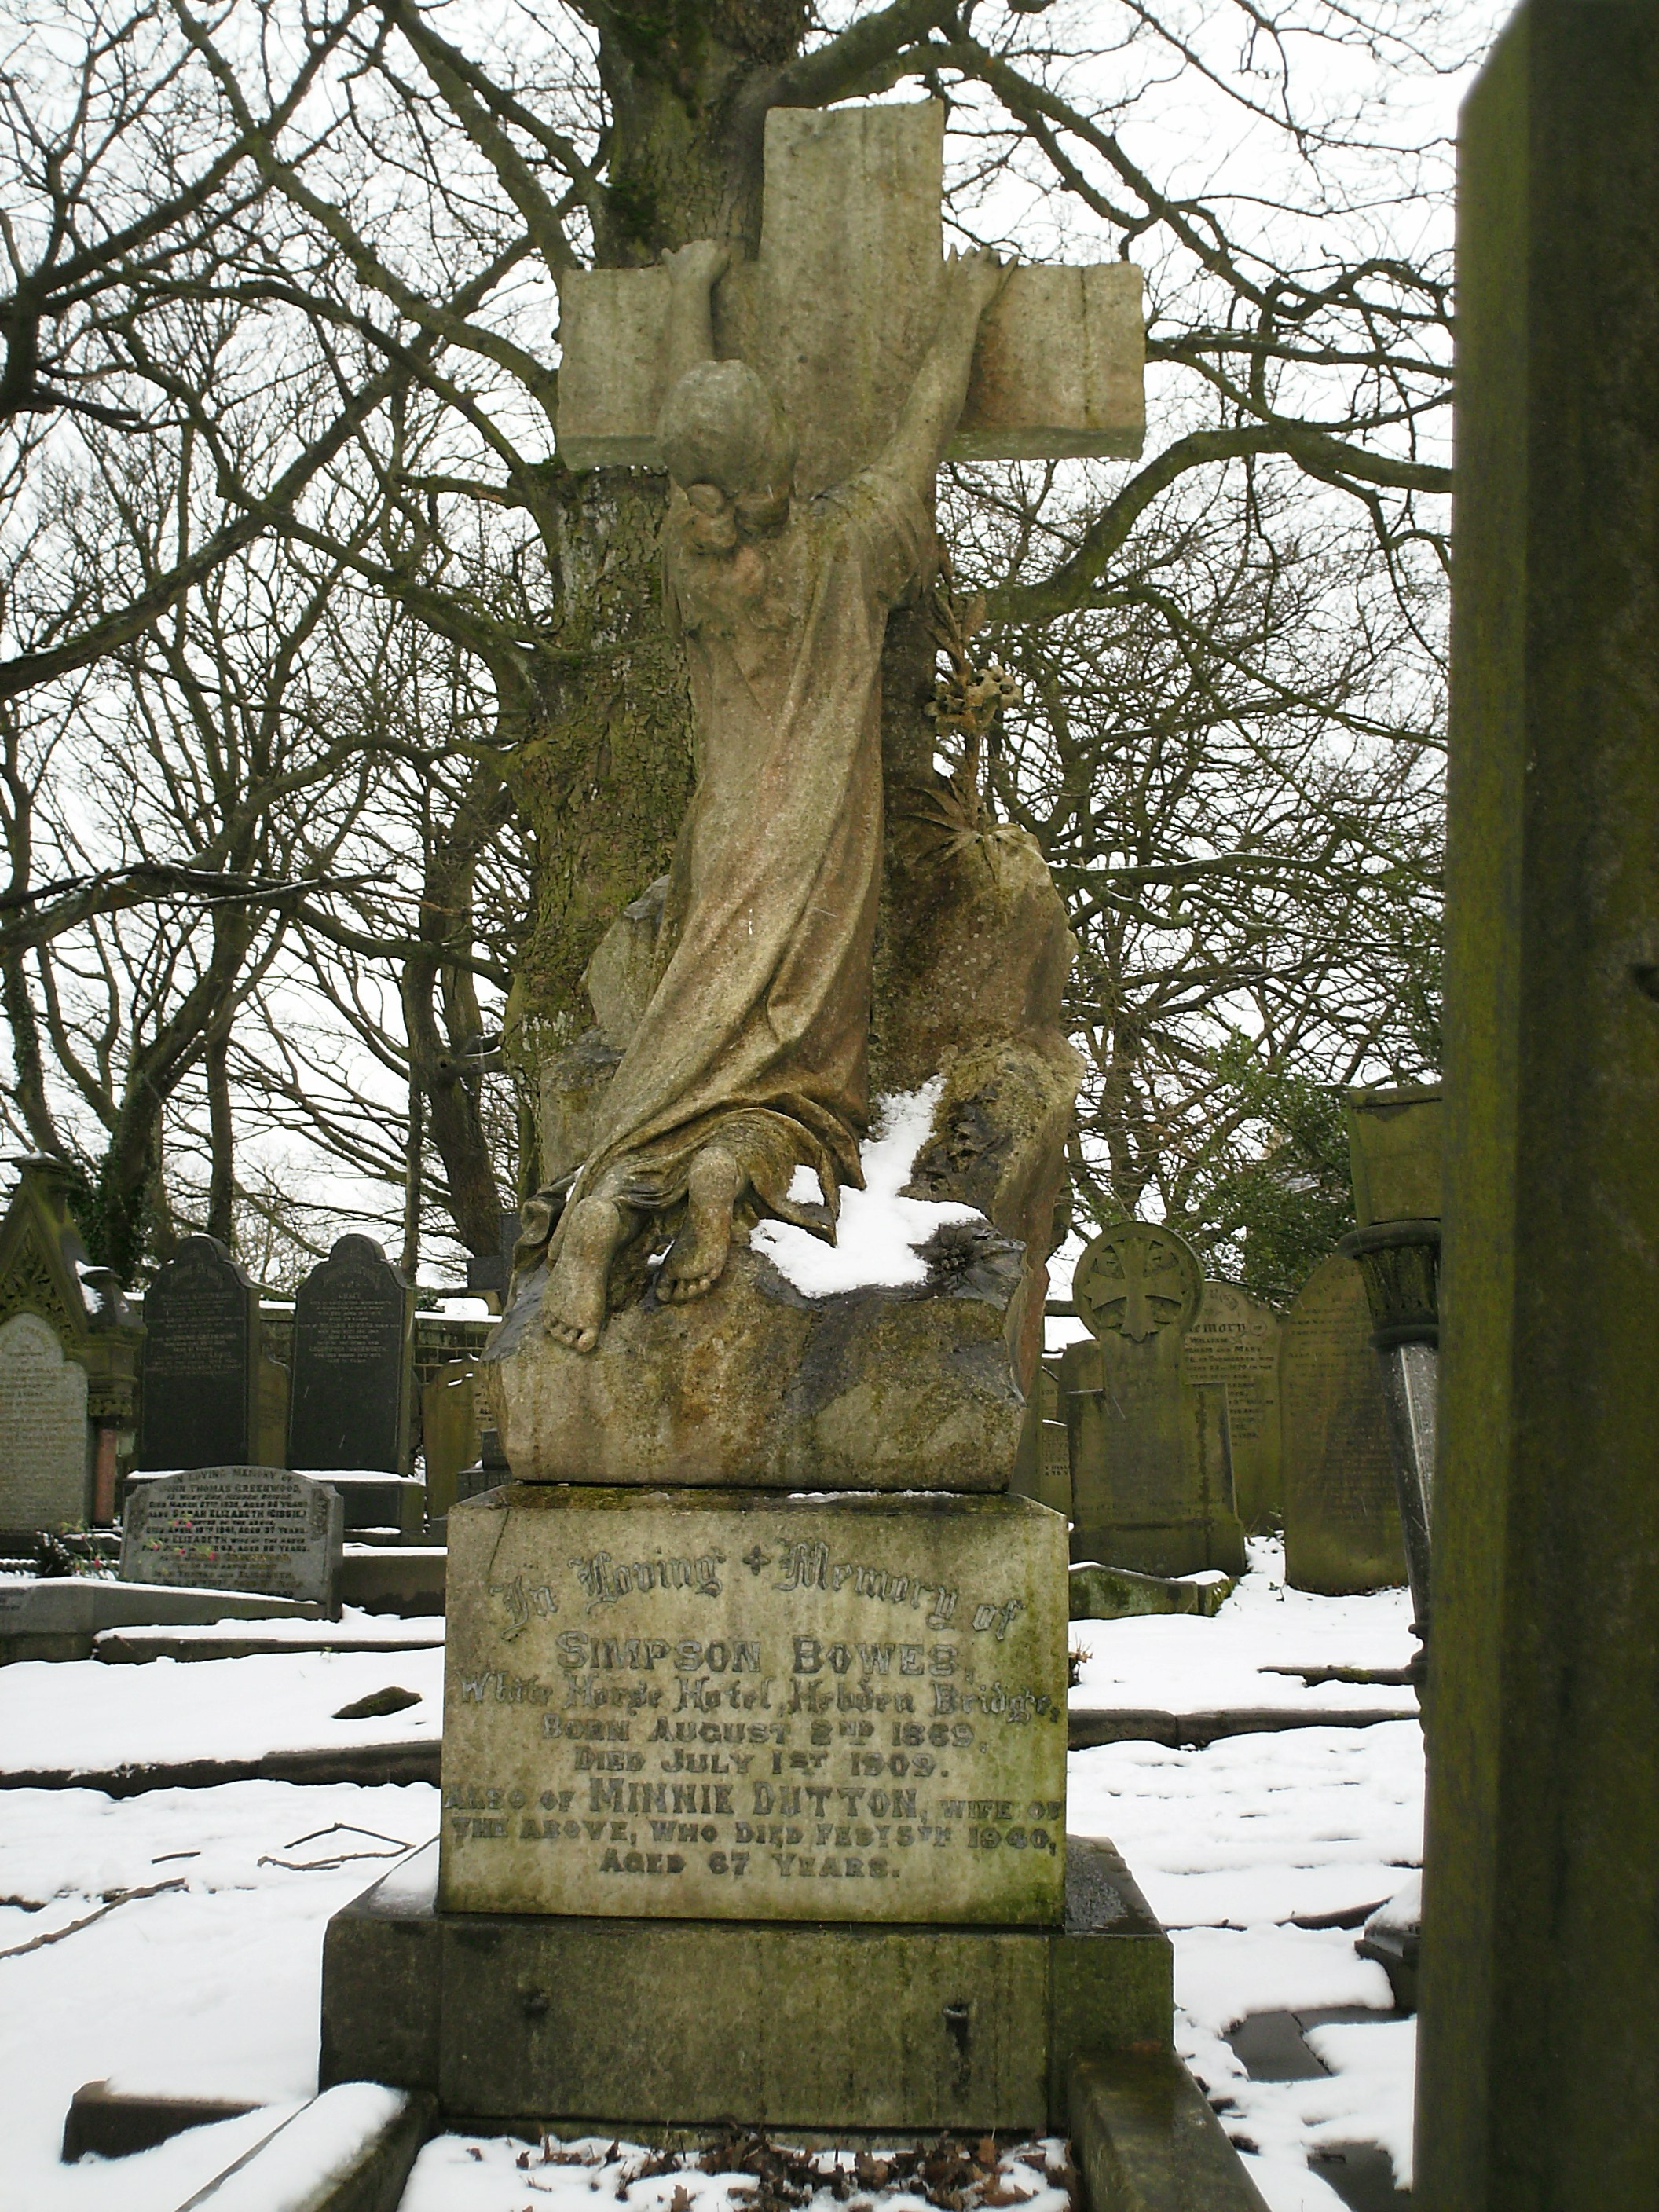 Grave in Heptonstall Cemetery in West Yorkshire